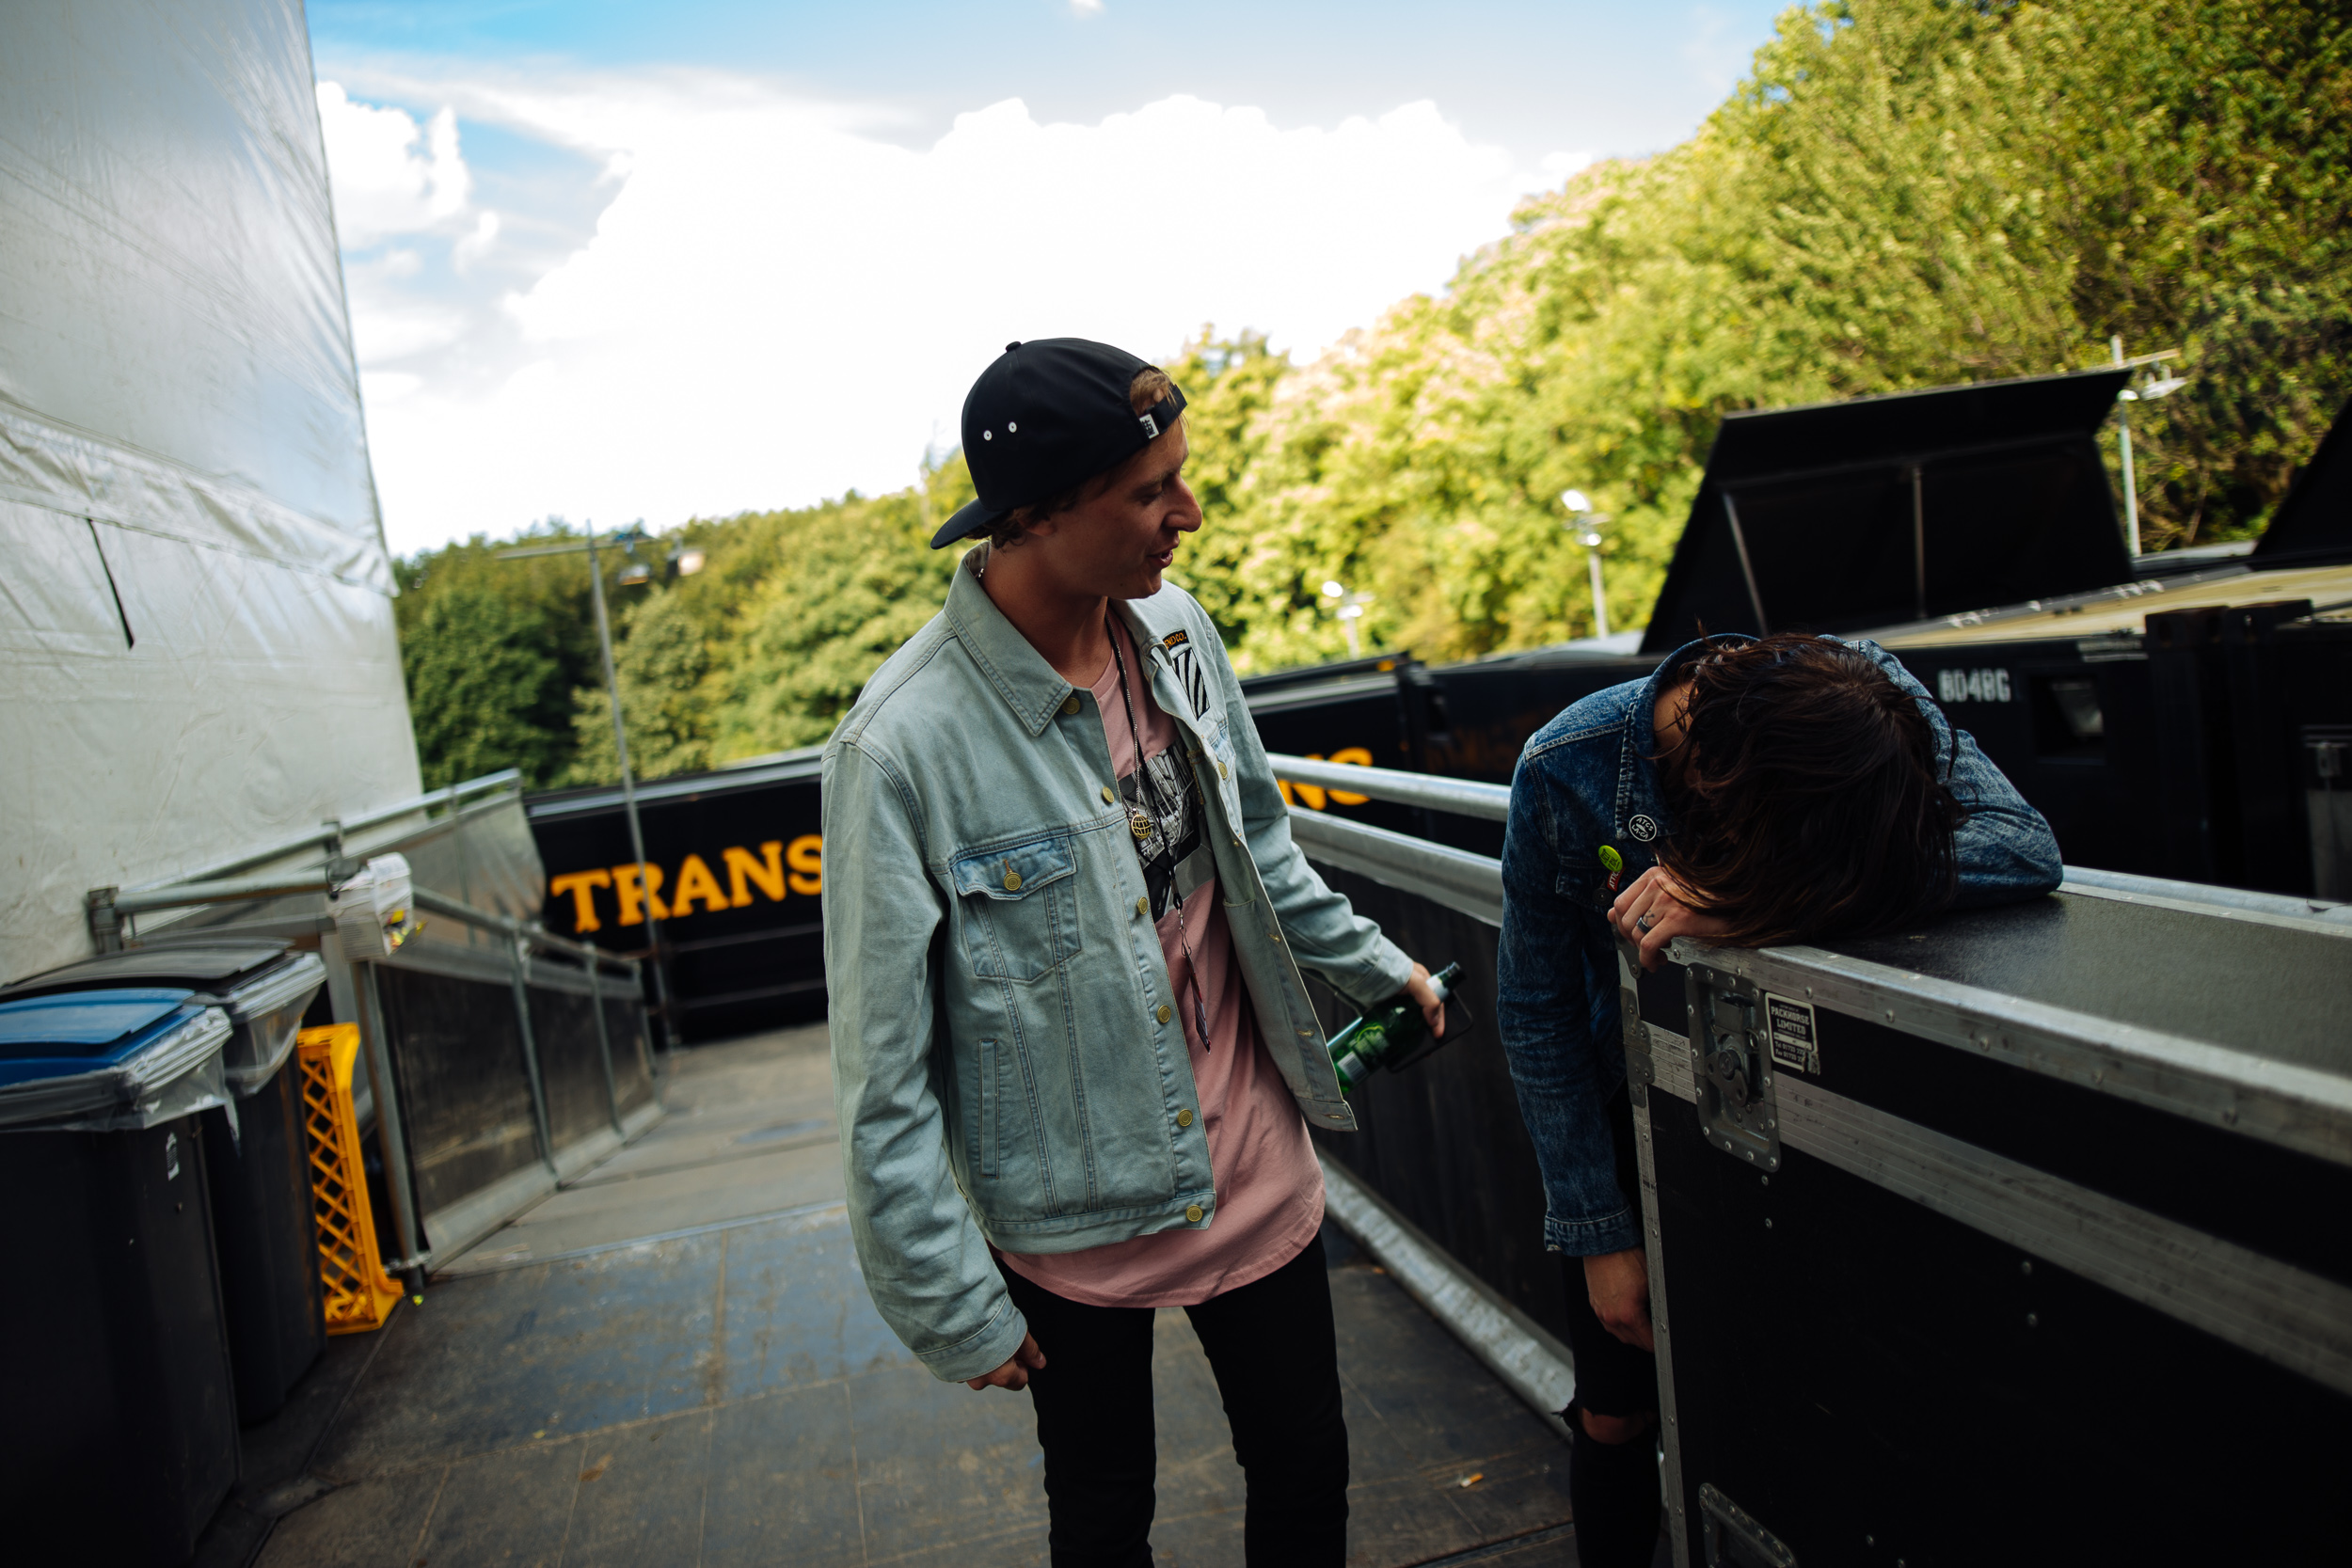 Derek of State Champs and Kellin of Sleeping With Sirens at Leeds Festival by Adam Elmakias